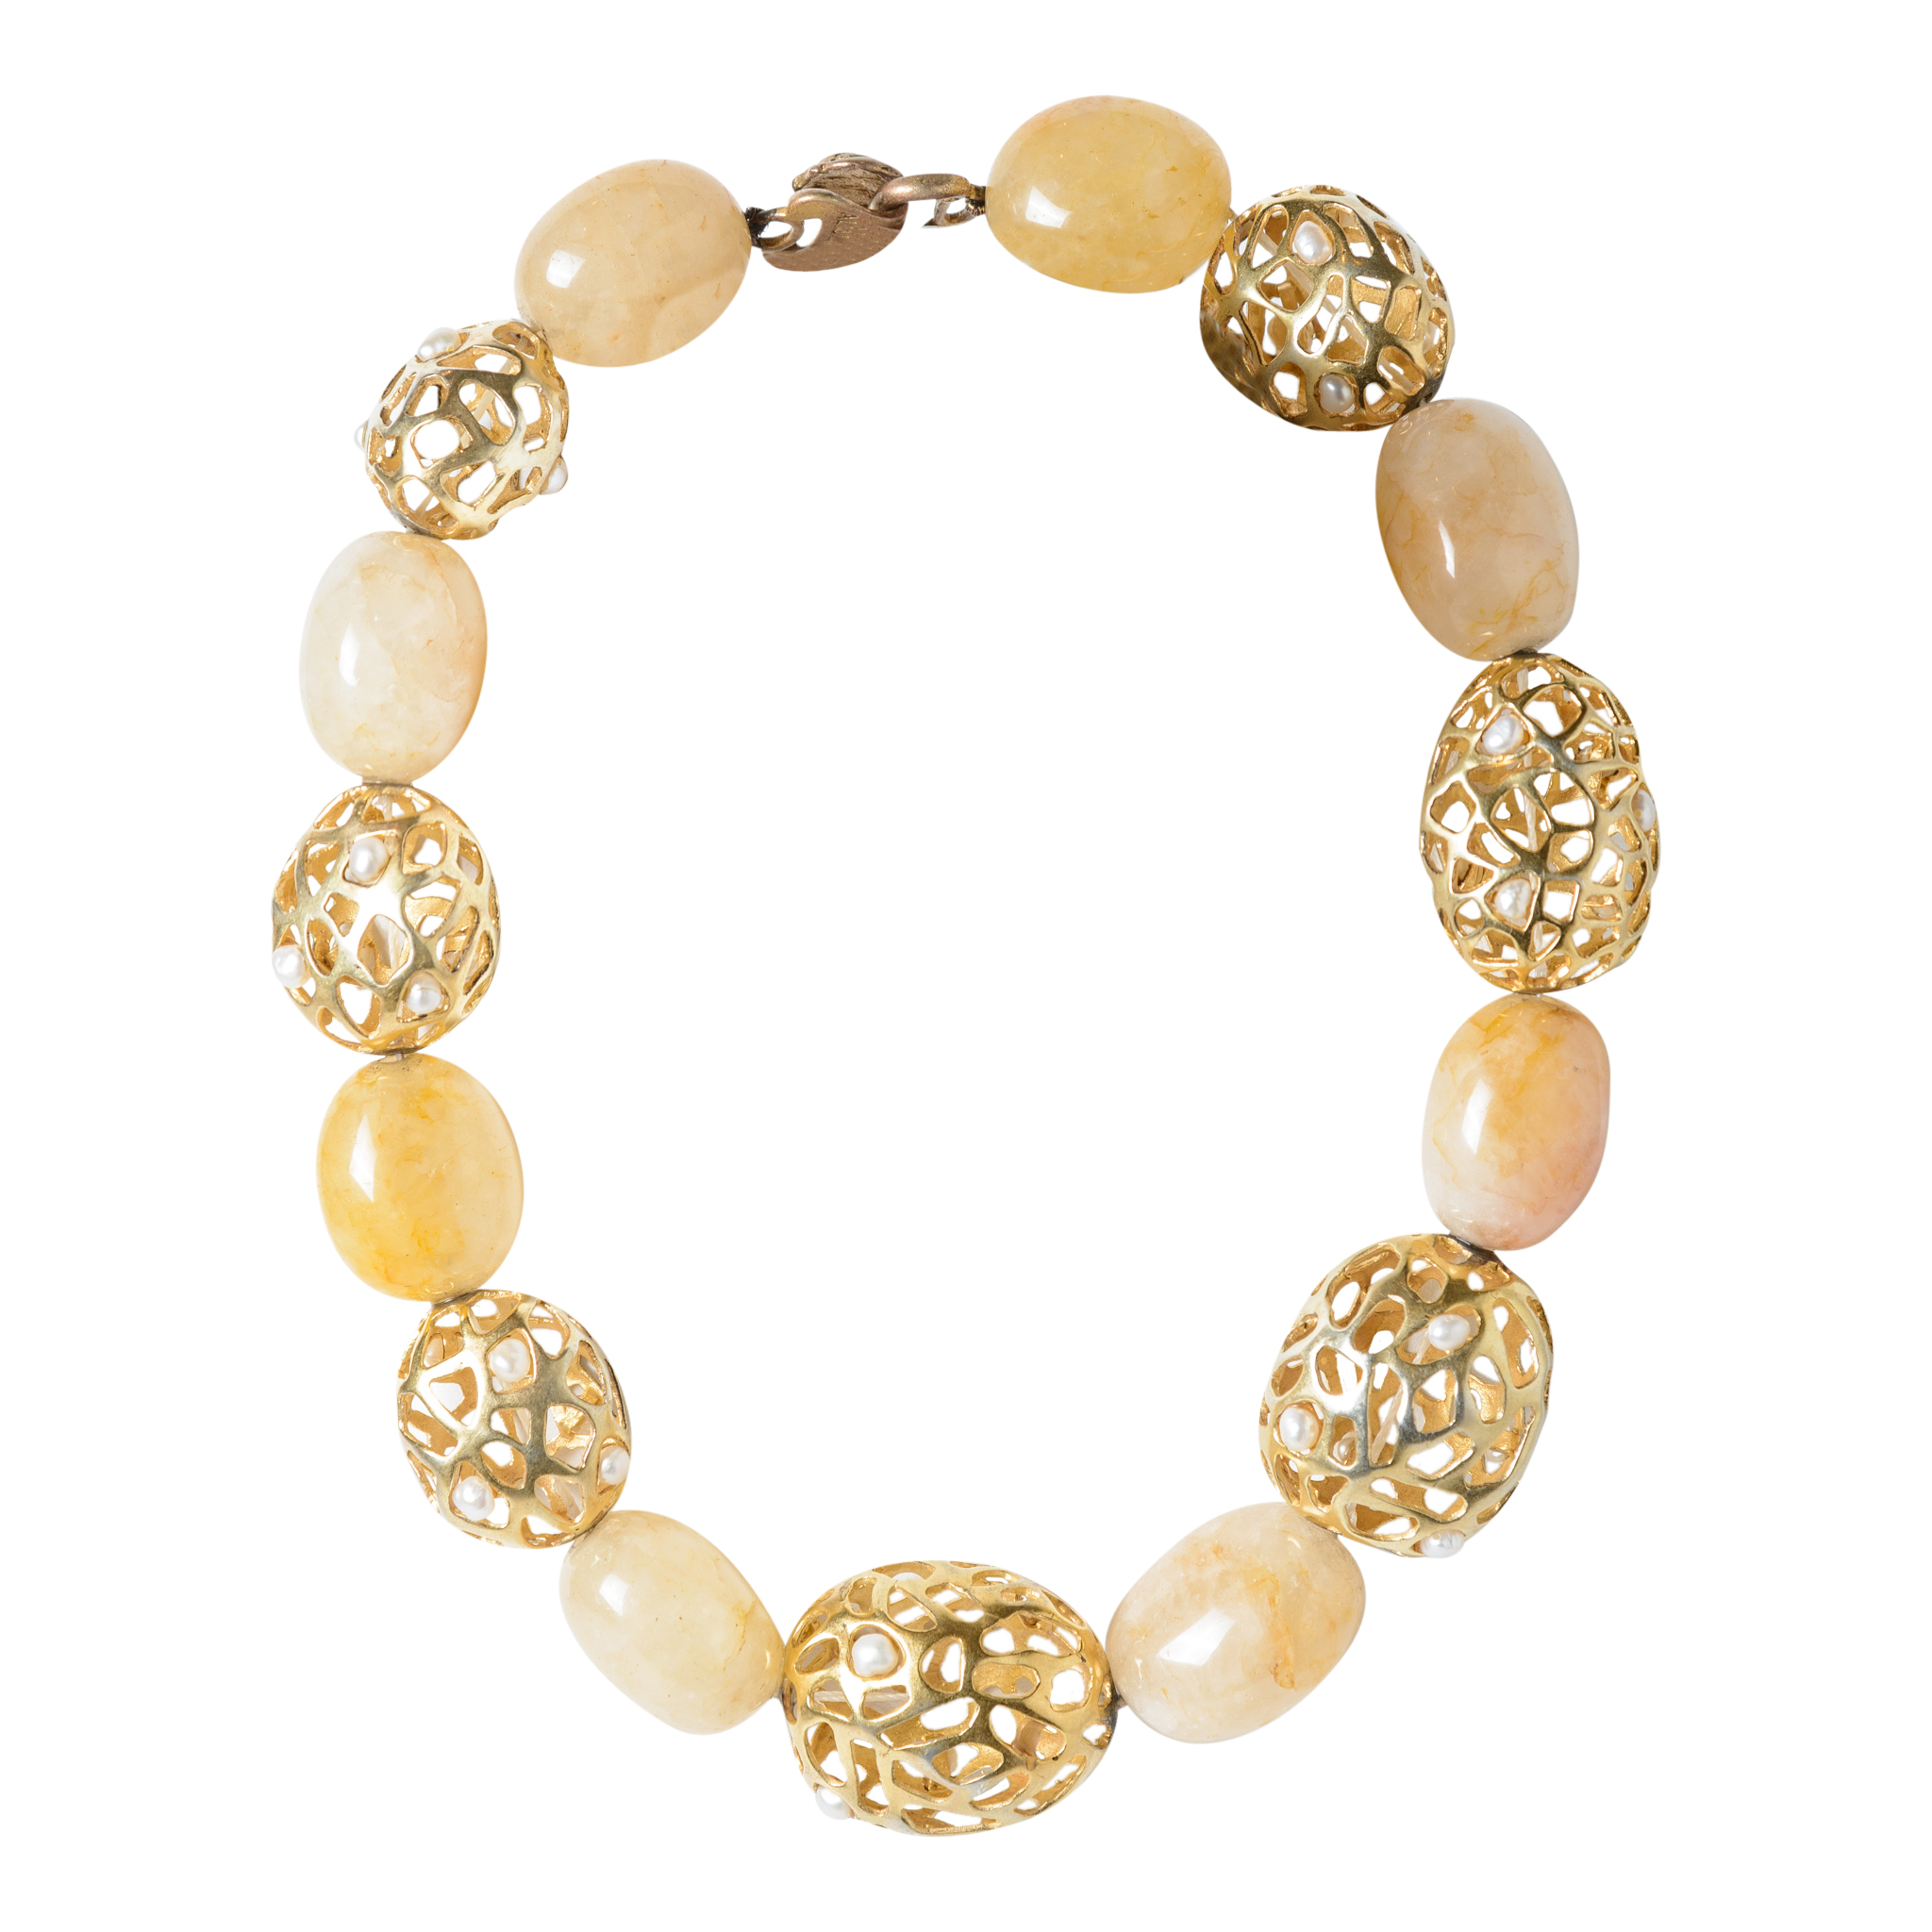 Best Pearl Jewelry Design Ideas Images - Home Design Ideas ...